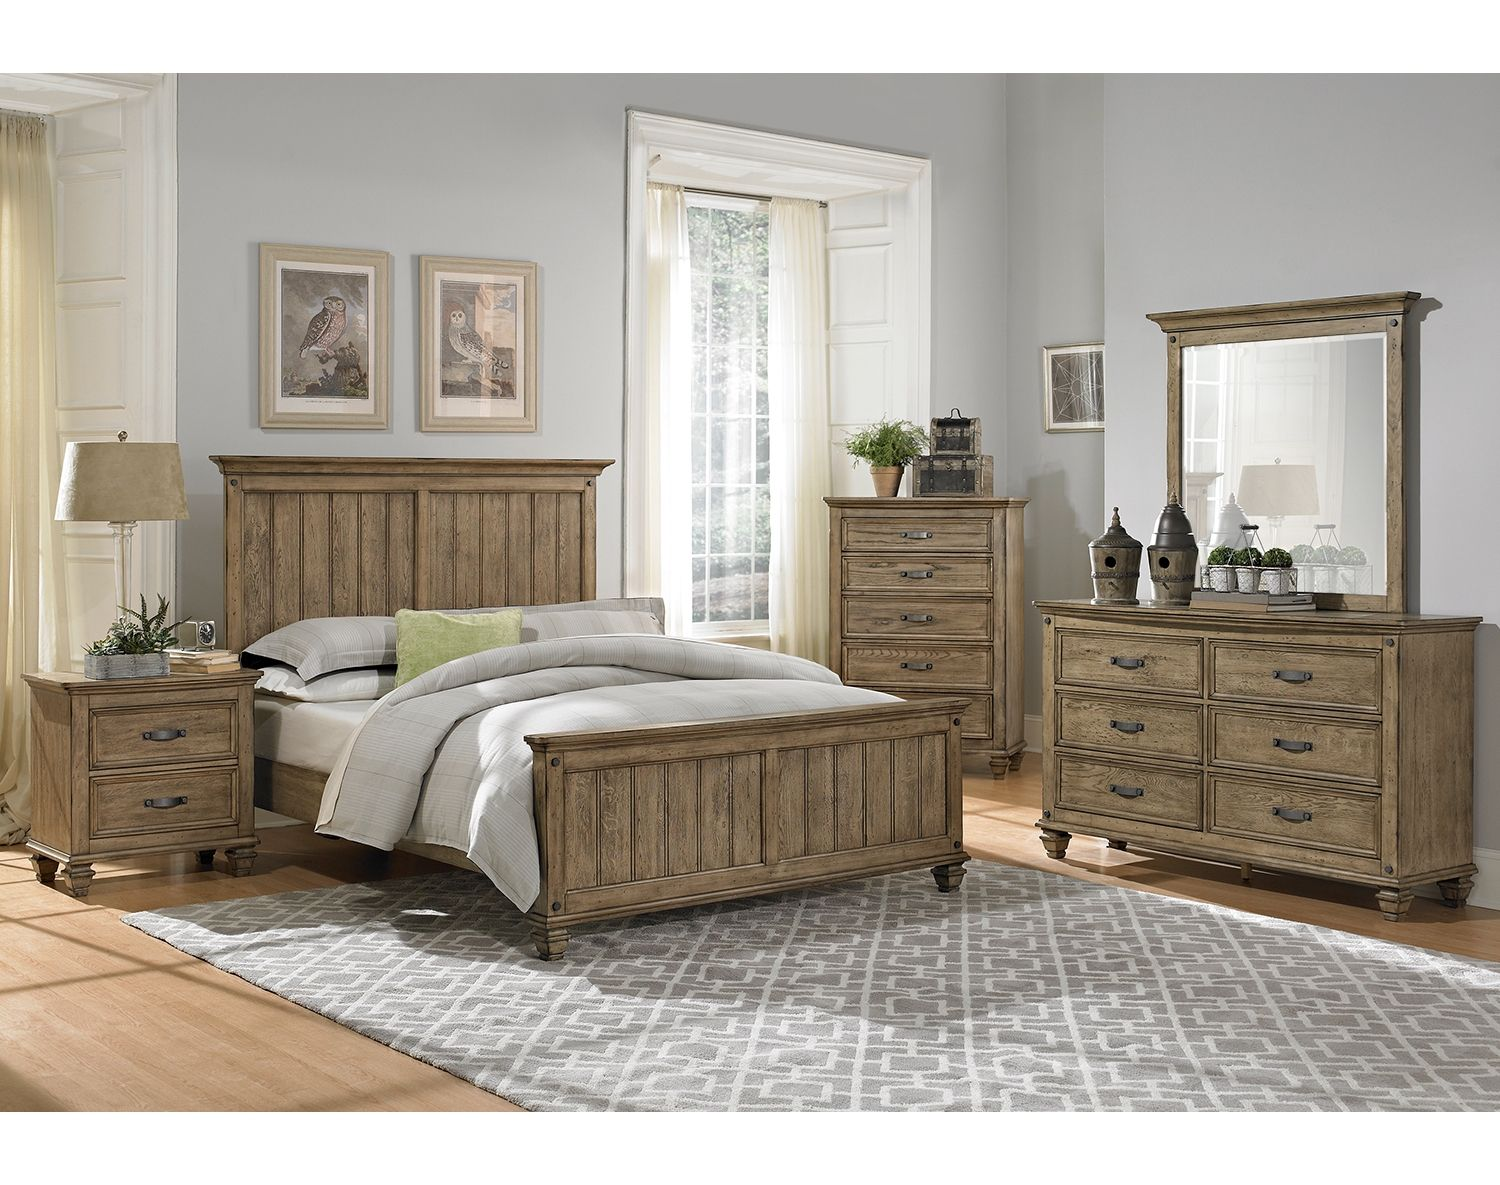 Kittles Bedroom Furniture Bedroom Furniture The Hartwell Collection Hartwell Queen Bed